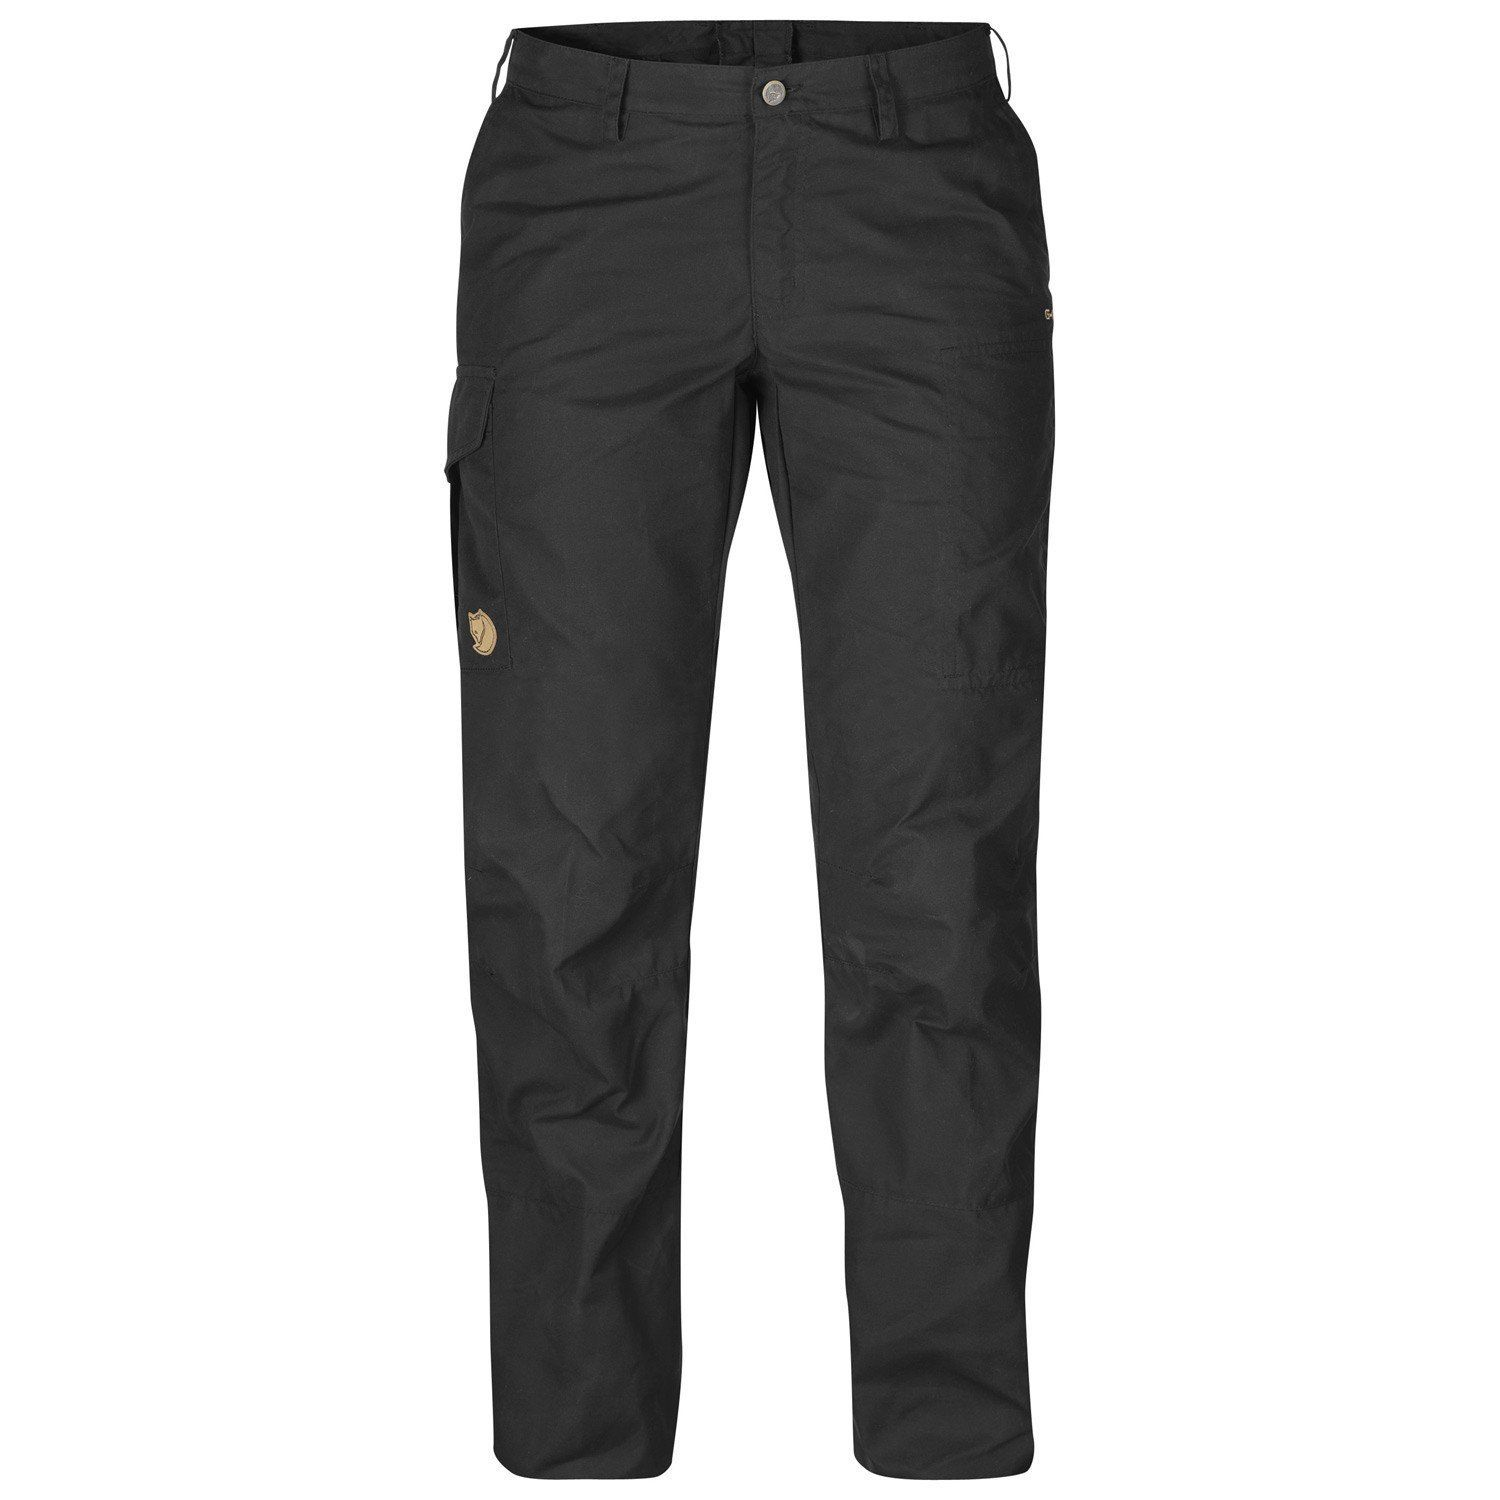 Fjällräven - Women's Karla Pro Trousers Curved ➽ Dispatch within - Buy  online now!